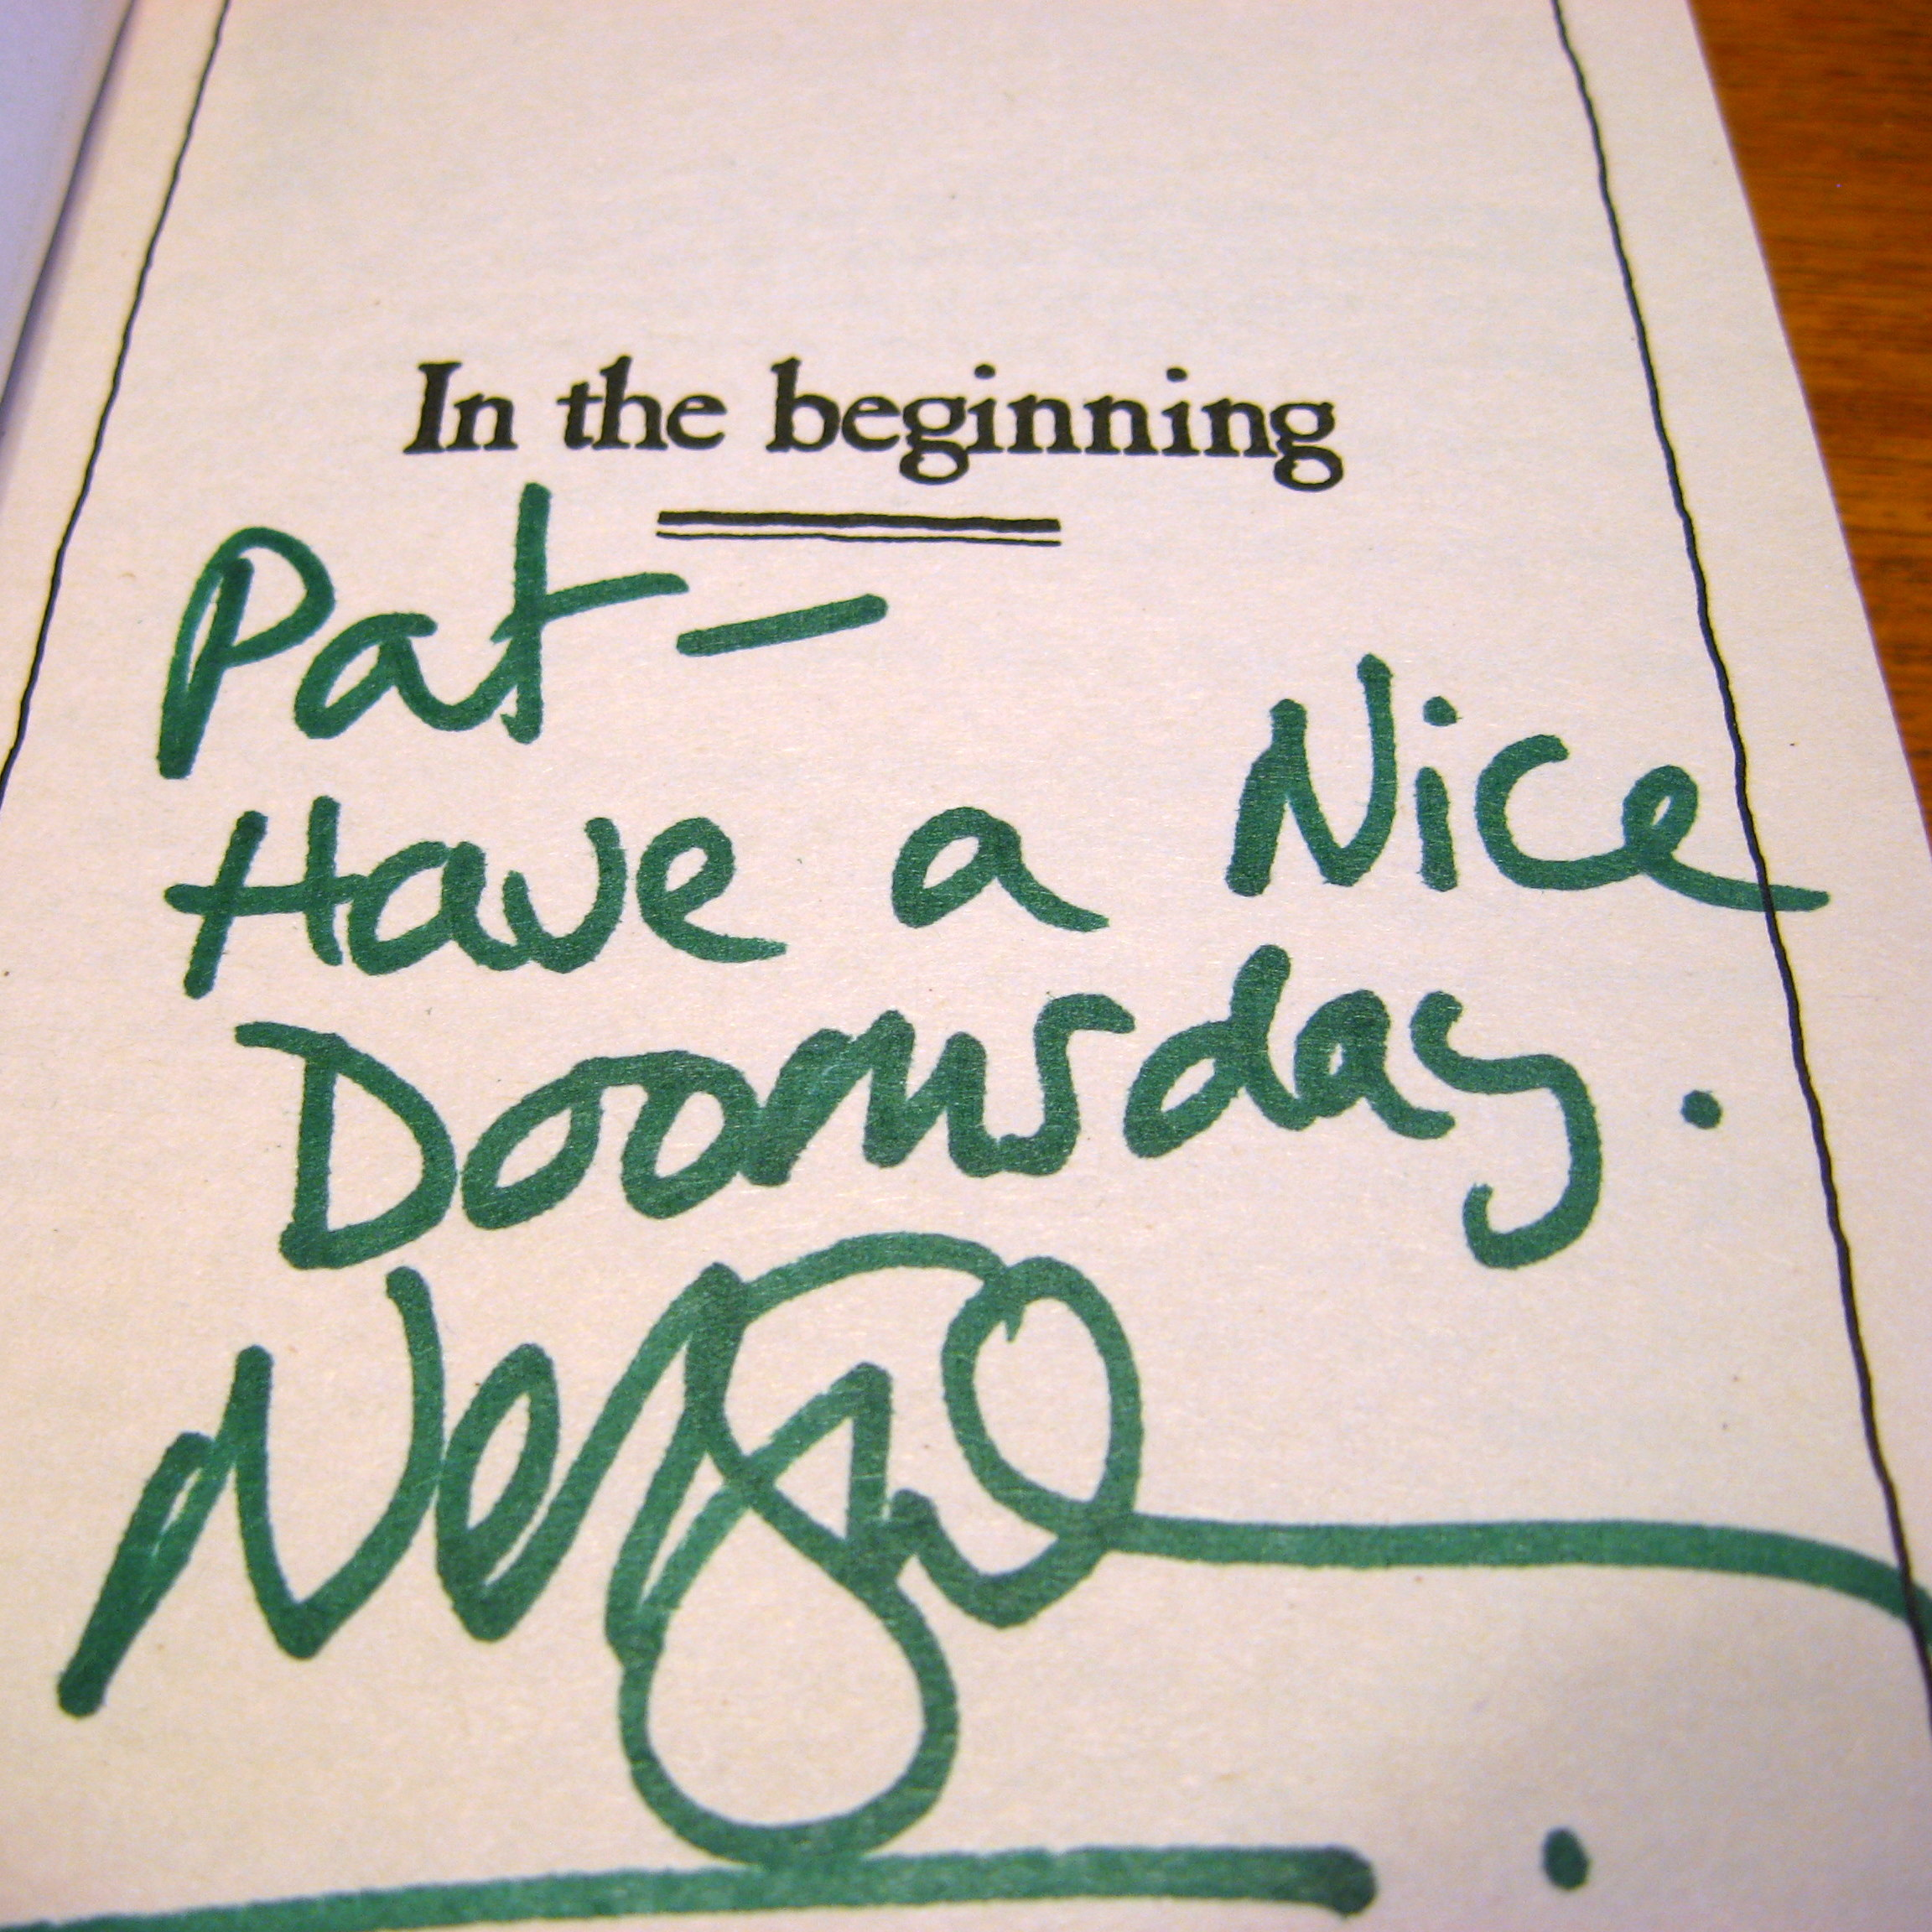 My copy of Good Omens, signed in Dec. 2009 by Neil Gaiman